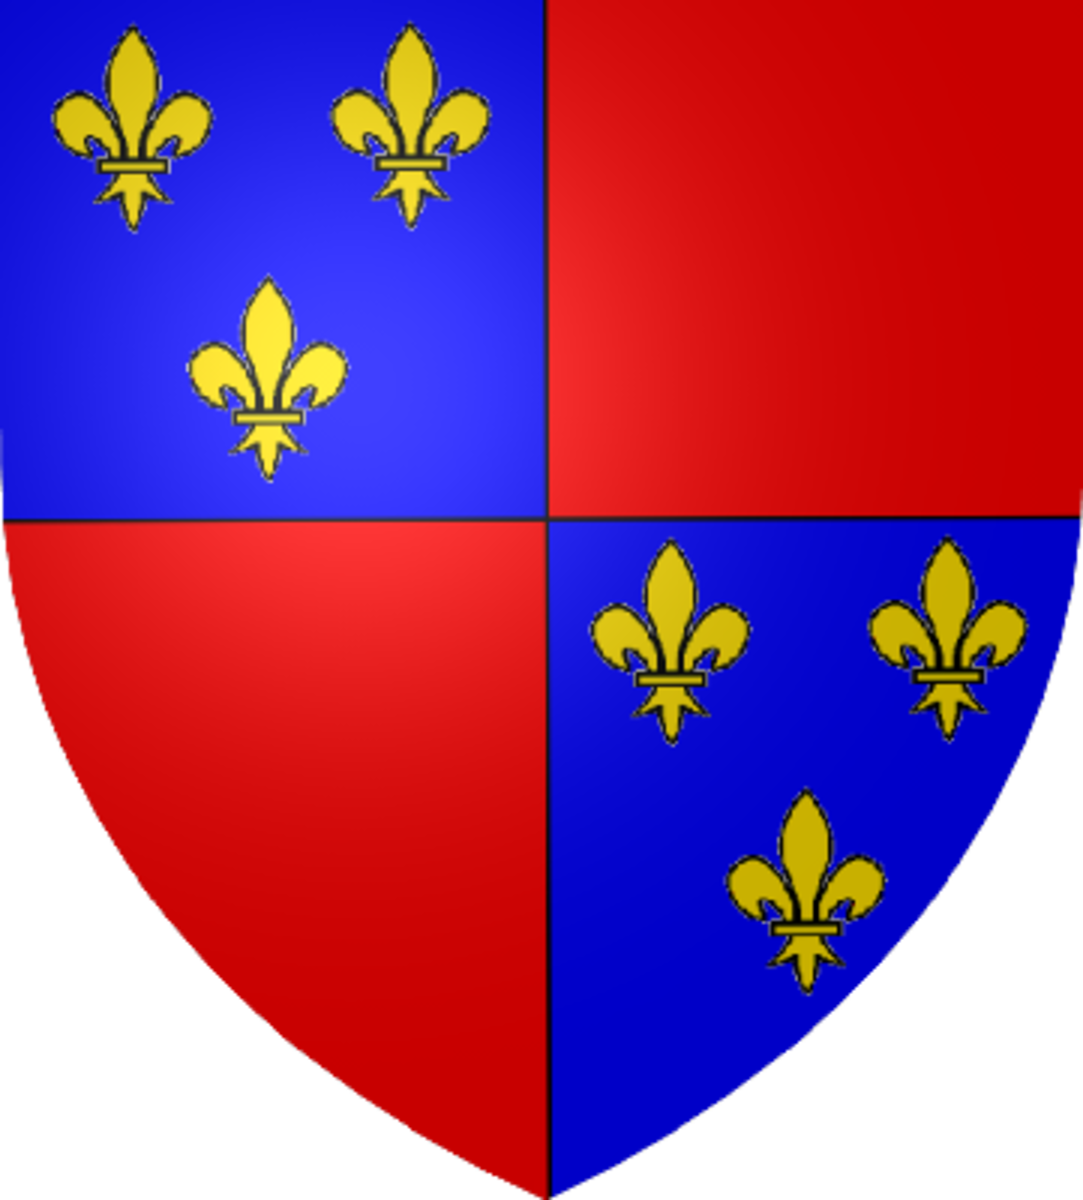 This is the coat of arms of Charles d'Albret, the Constable of France and leader of the French Army at Agincourt.